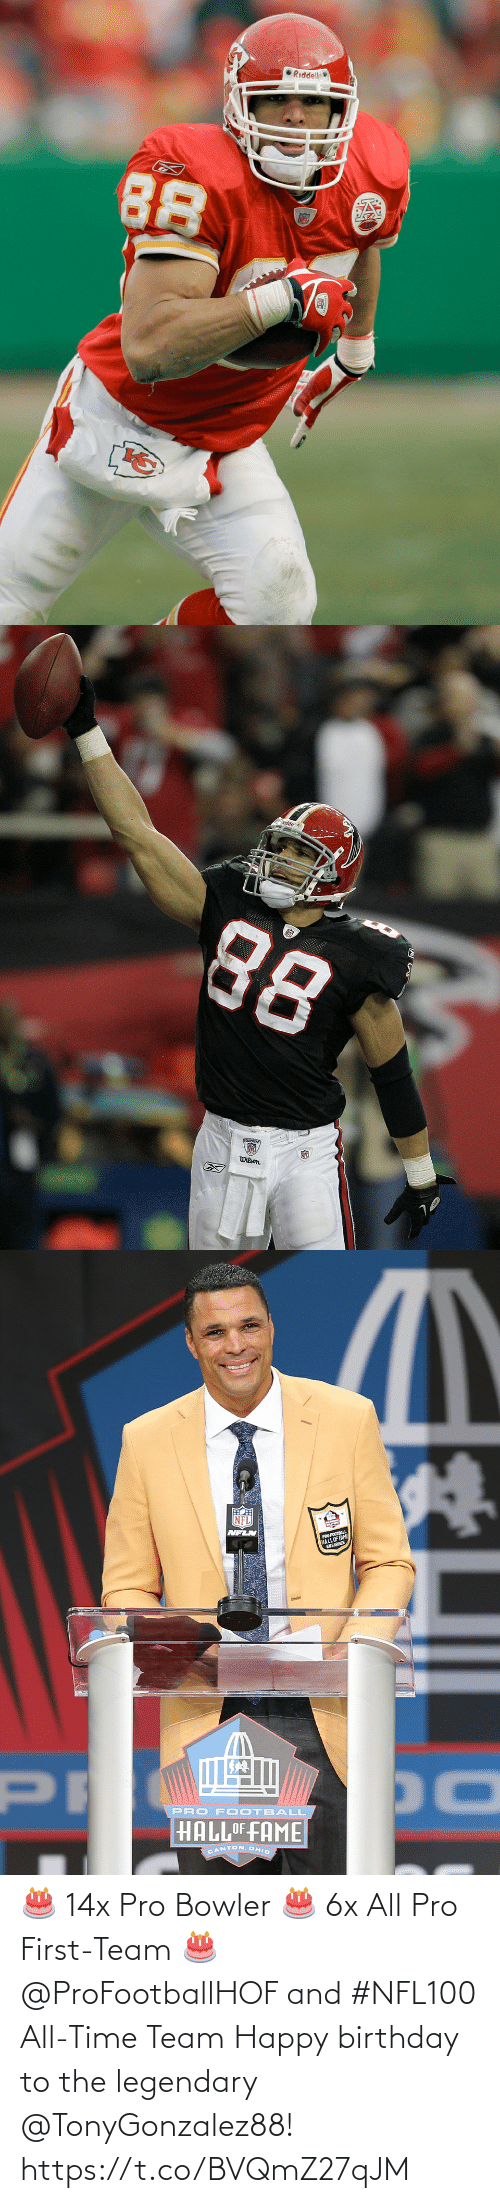 Happy Birthday: 🎂 14x Pro Bowler 🎂 6x All Pro First-Team 🎂 @ProFootballHOF and #NFL100 All-Time Team  Happy birthday to the legendary @TonyGonzalez88! https://t.co/BVQmZ27qJM